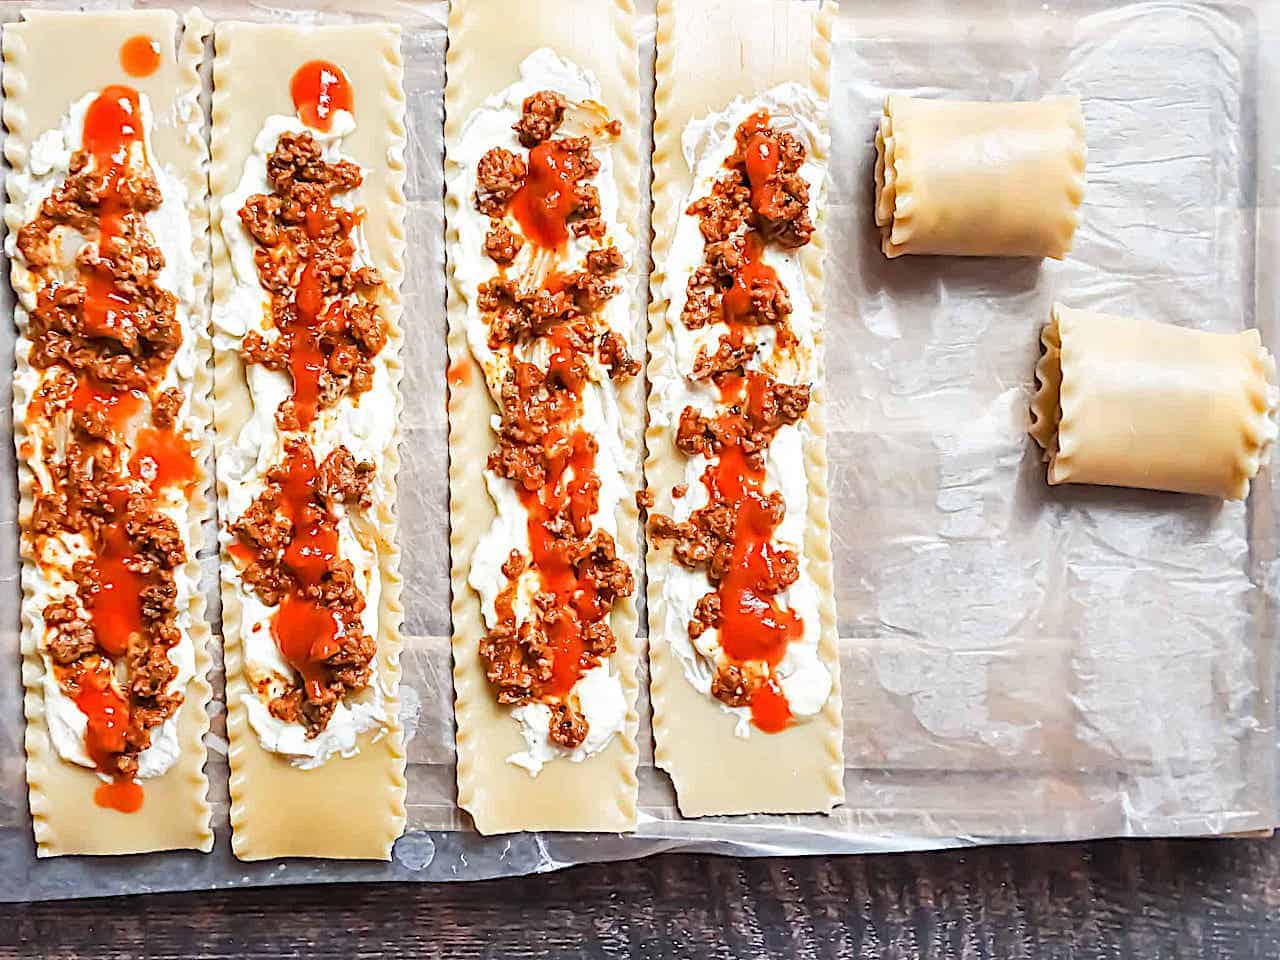 lasagna roll ups with ground beef and sauce on a parchment lined baking sheet